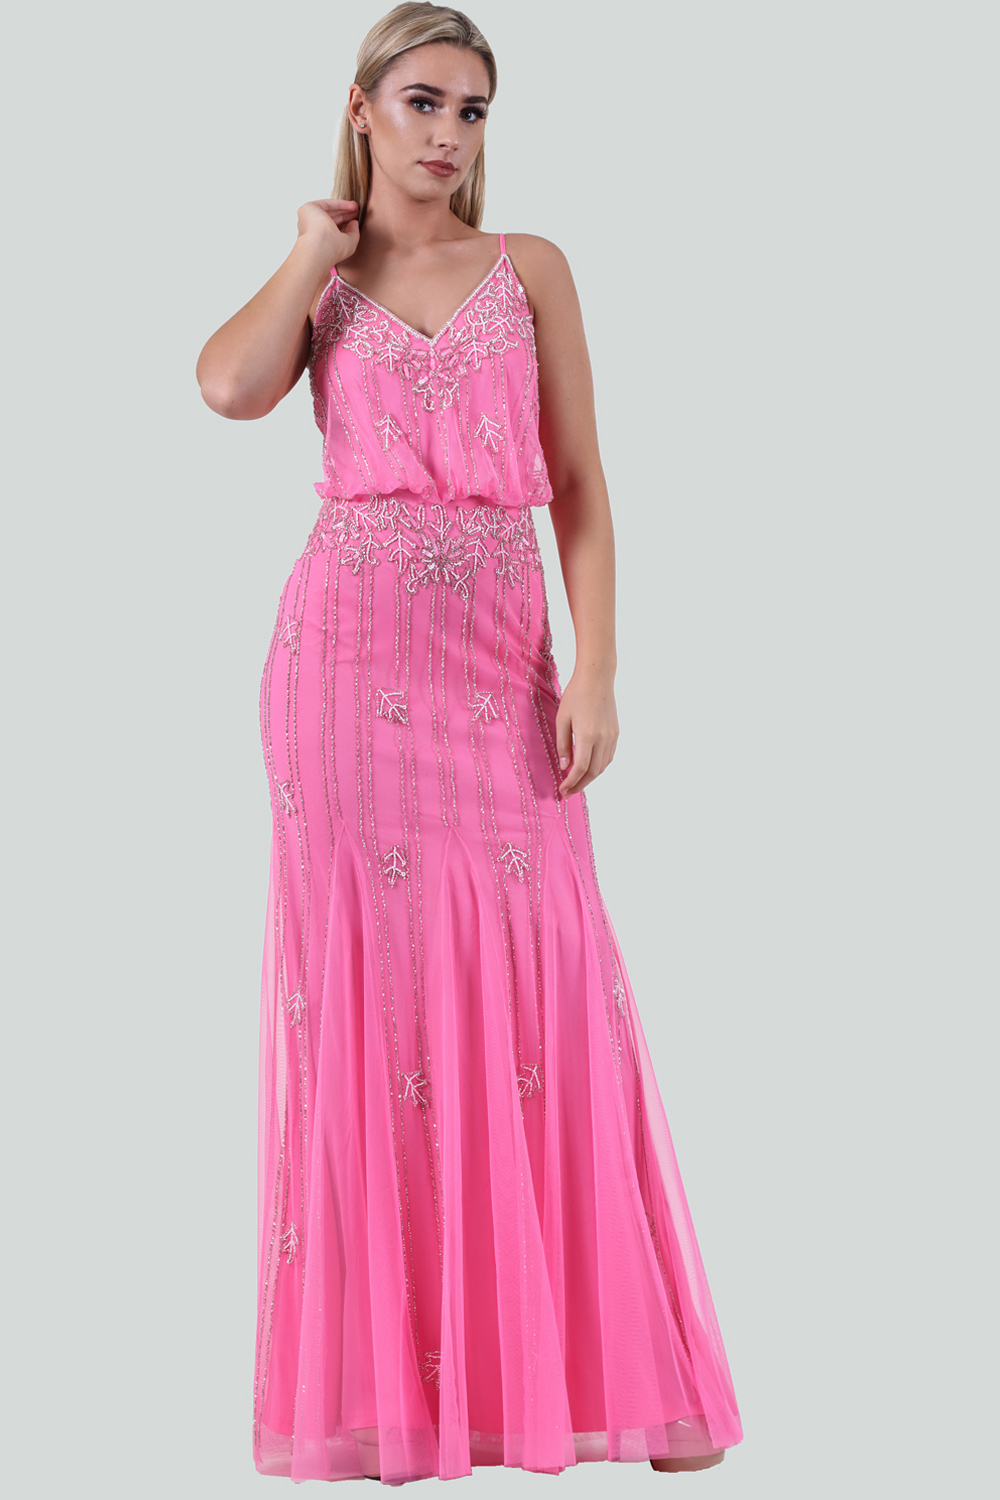 a6a4c432706fc Lace & Beads Pink Polyester Keeva Maxi Dress - Buy Lace & Beads Pink ...